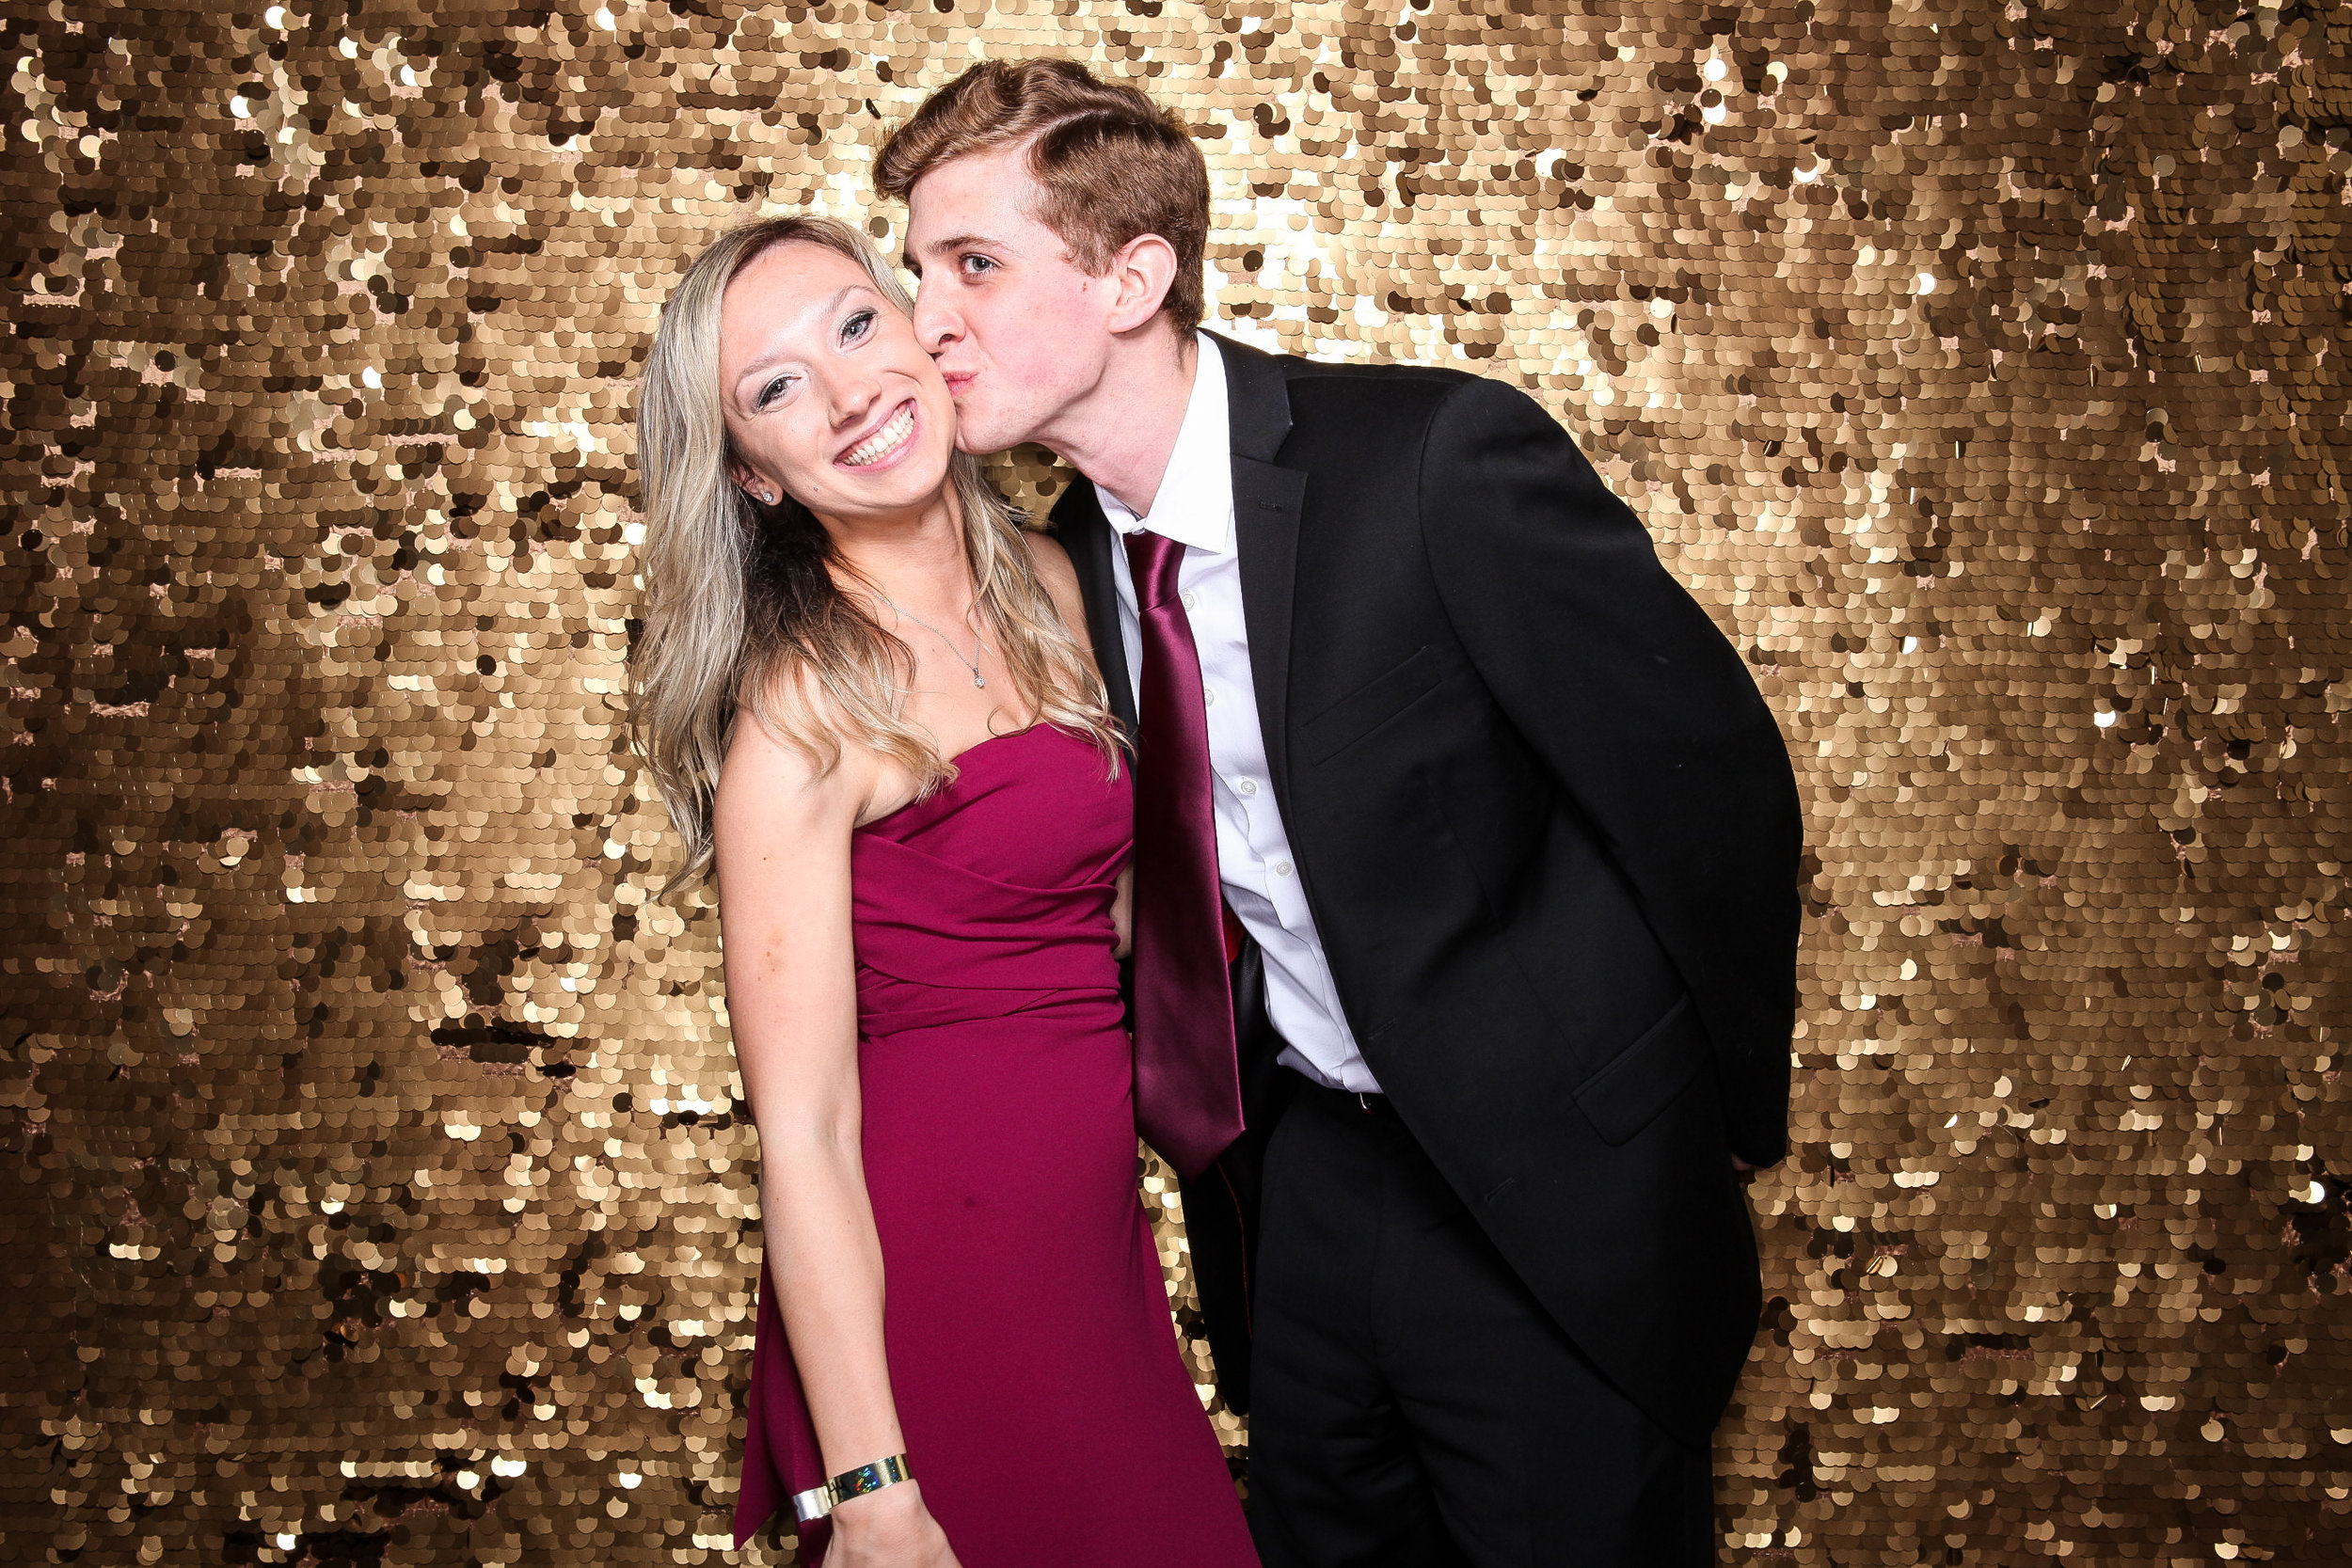 20190503_Adelphi_Senior_Formal-034.jpg